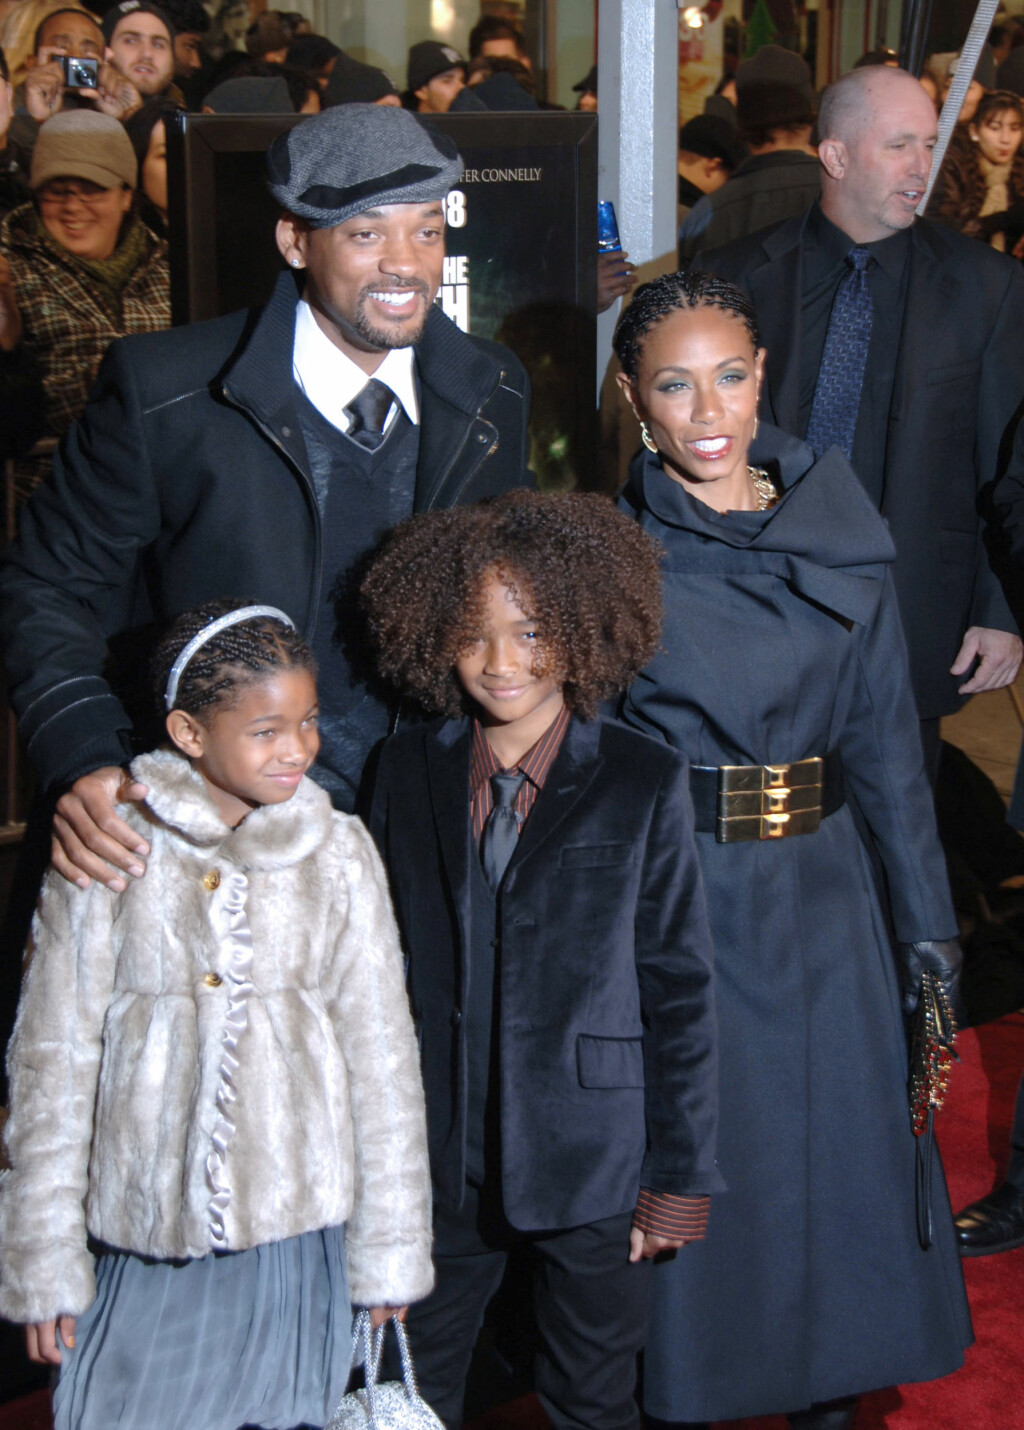 BERØMT FAMILIE: Will Smith, Jada Pinkett Smith, Willow Smith og Jaden Smith. Foto: Splash News